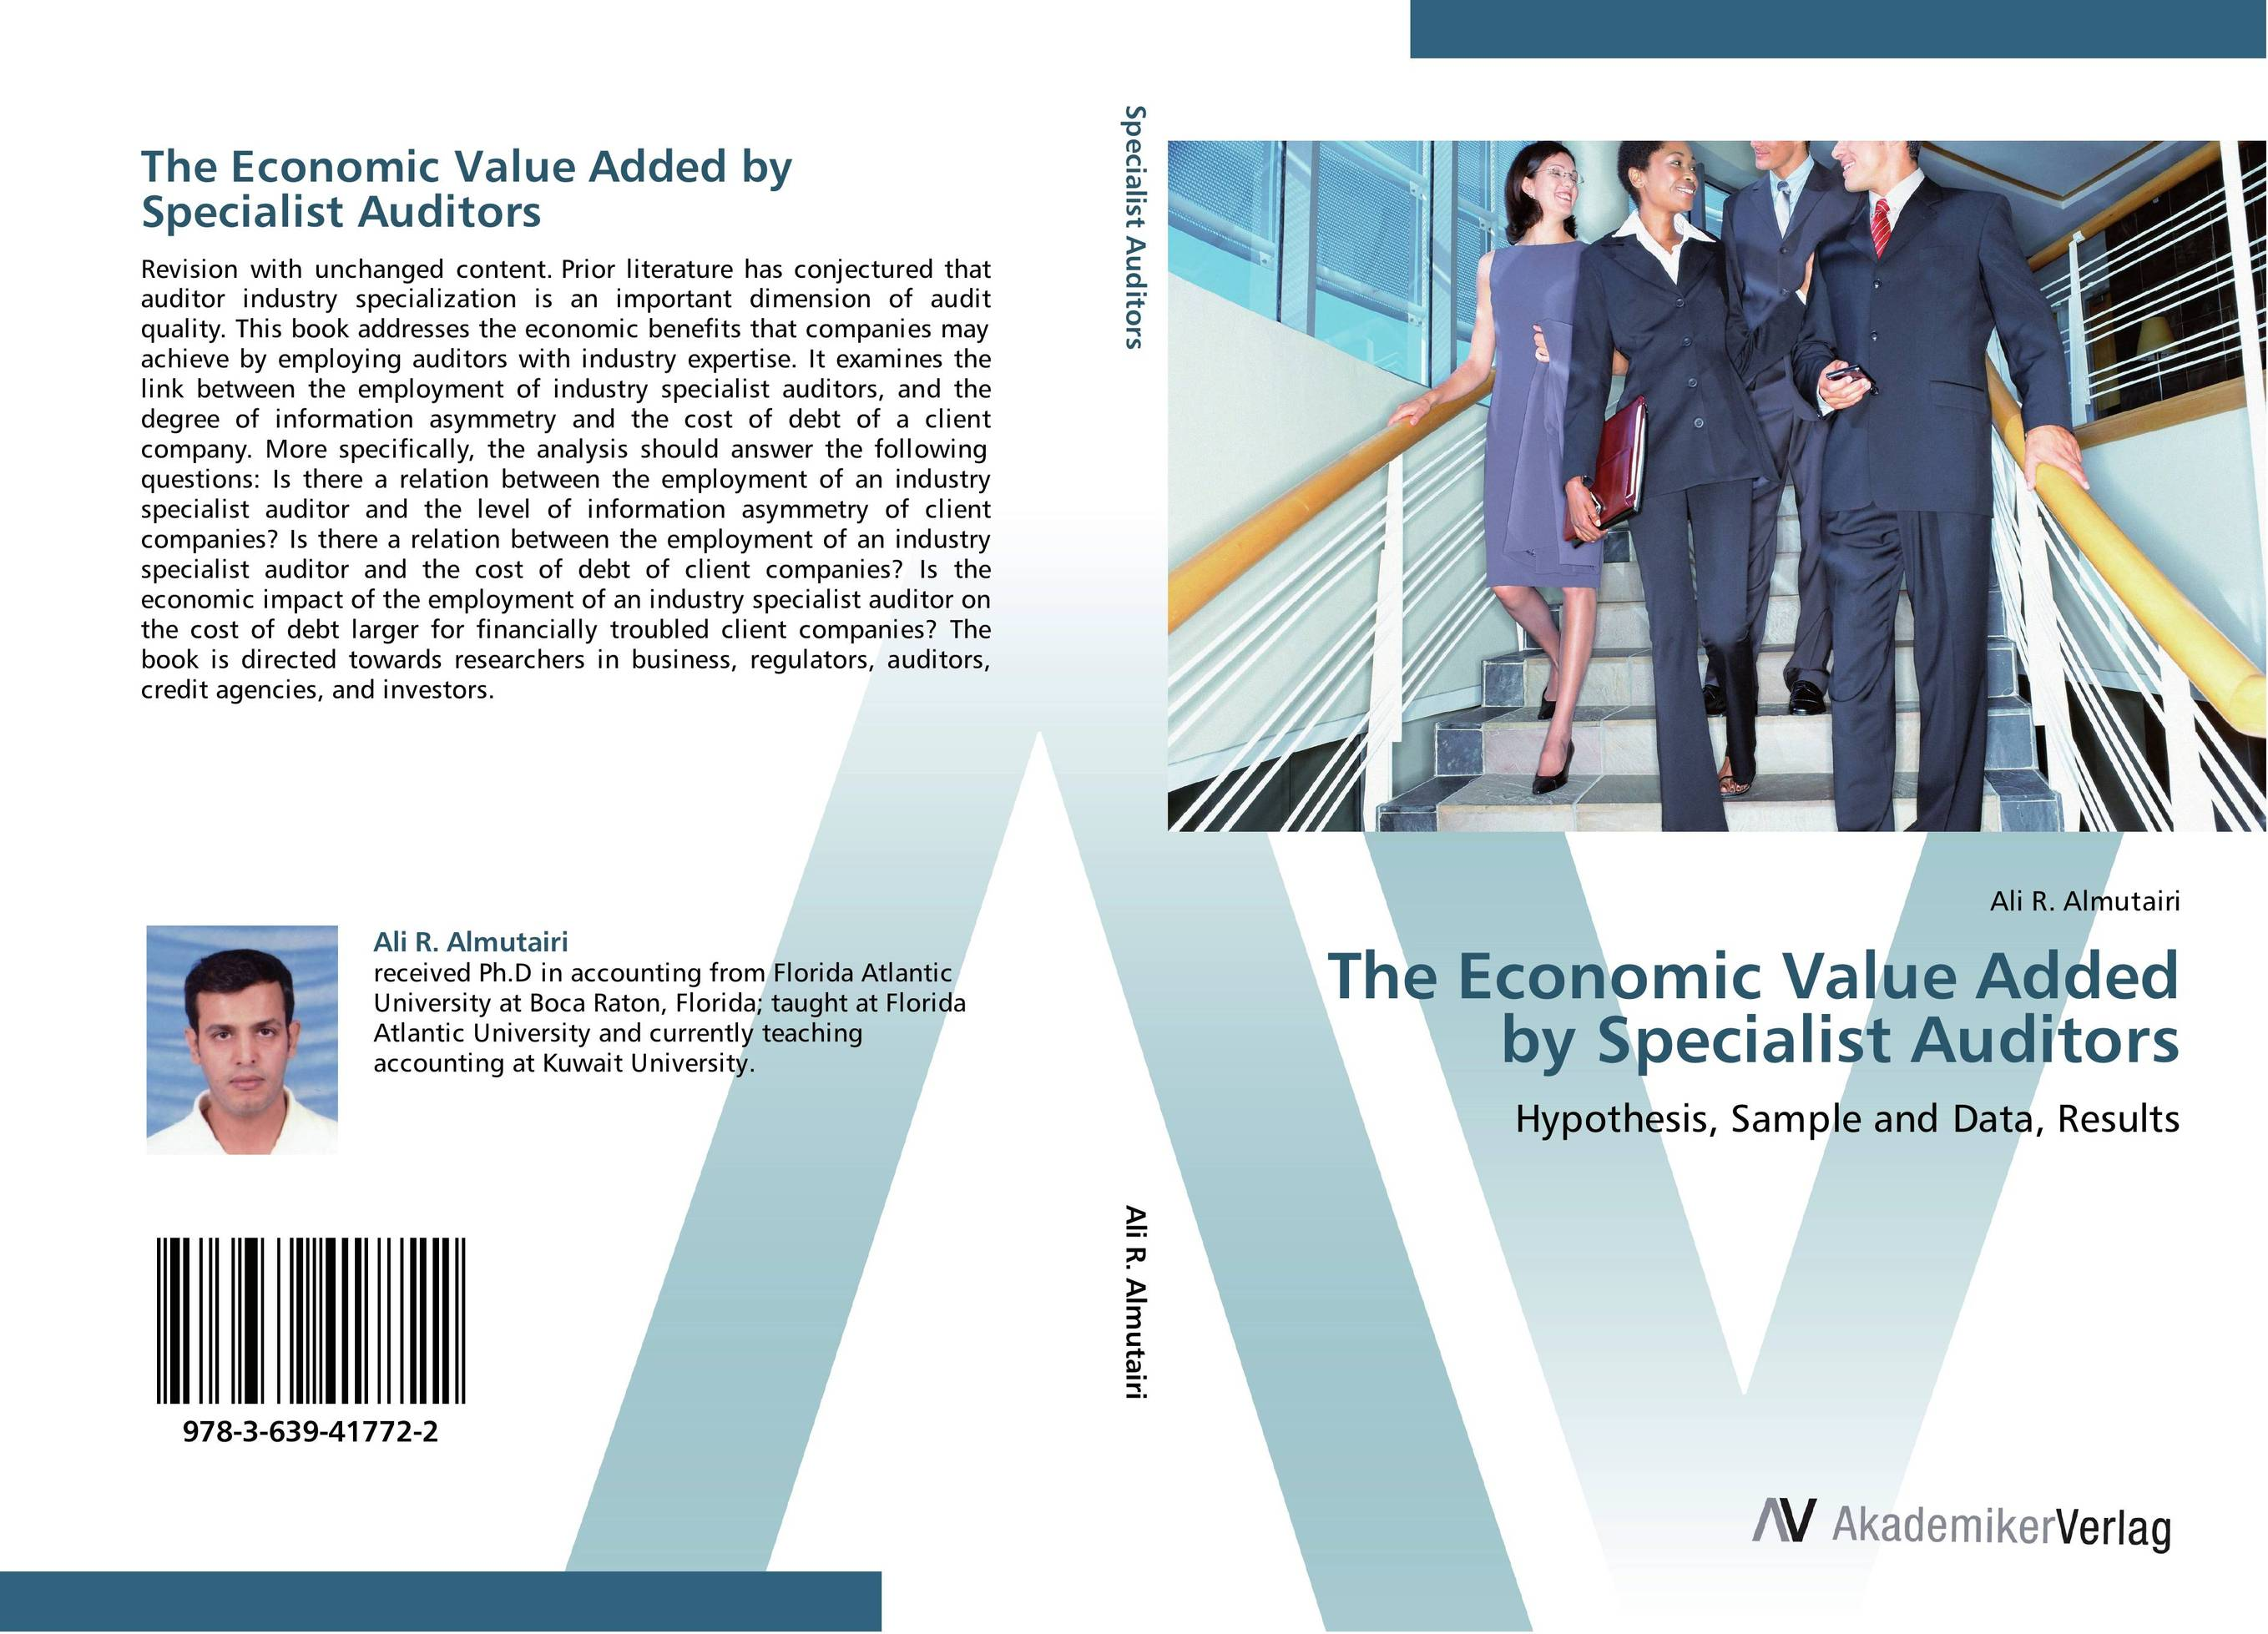 The Economic Value Added by Specialist Auditors